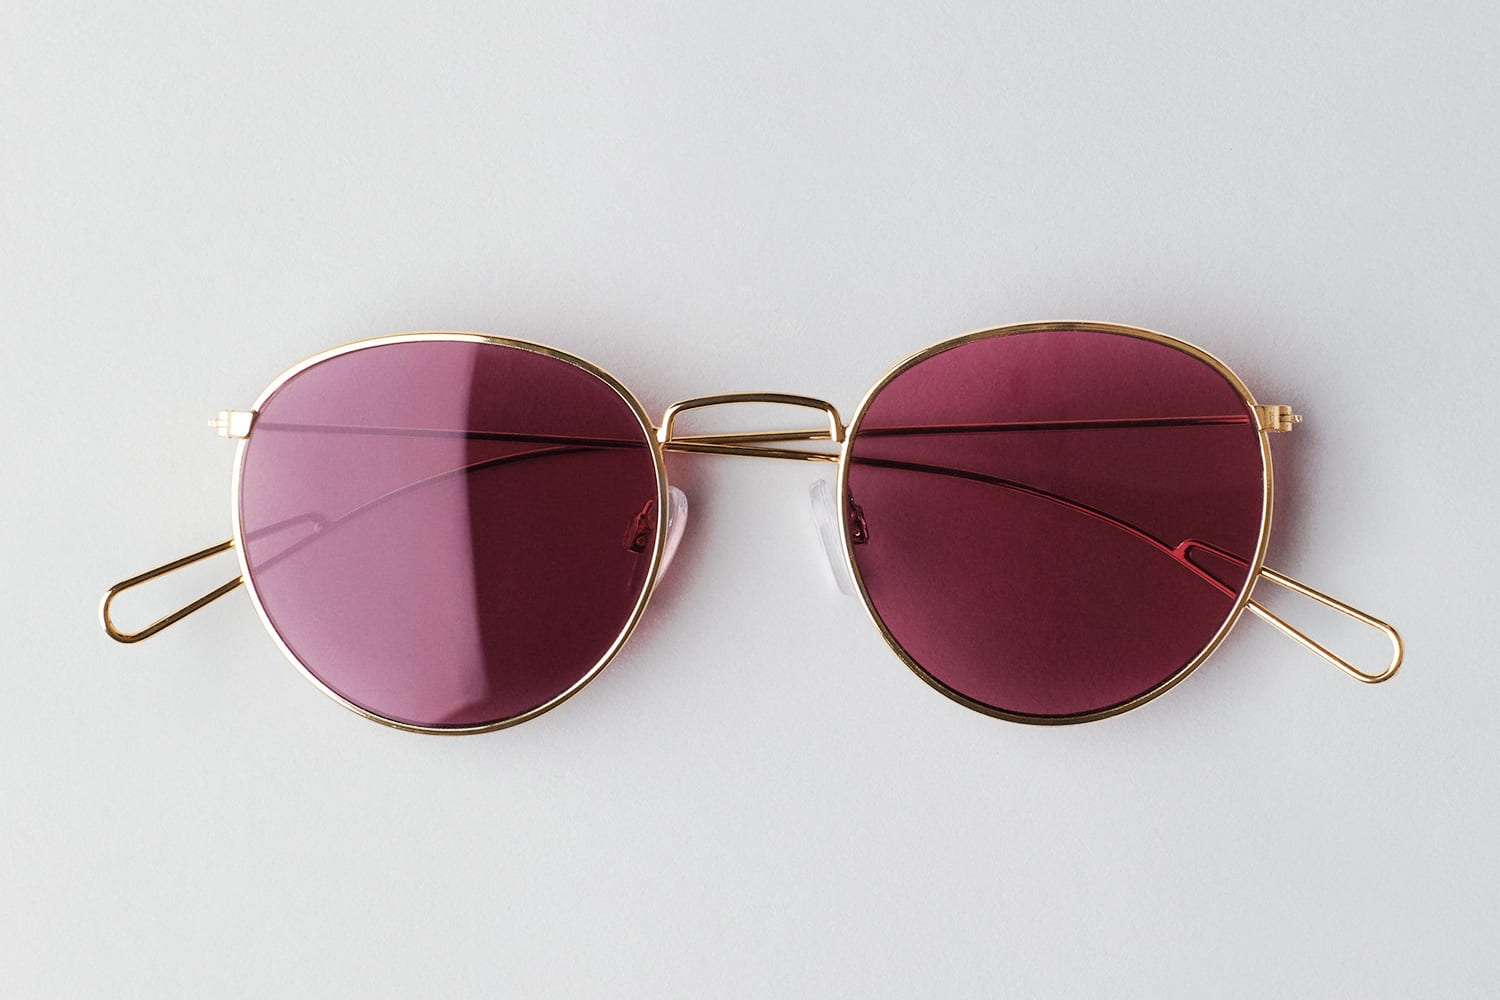 Weekday-round-sunglasses